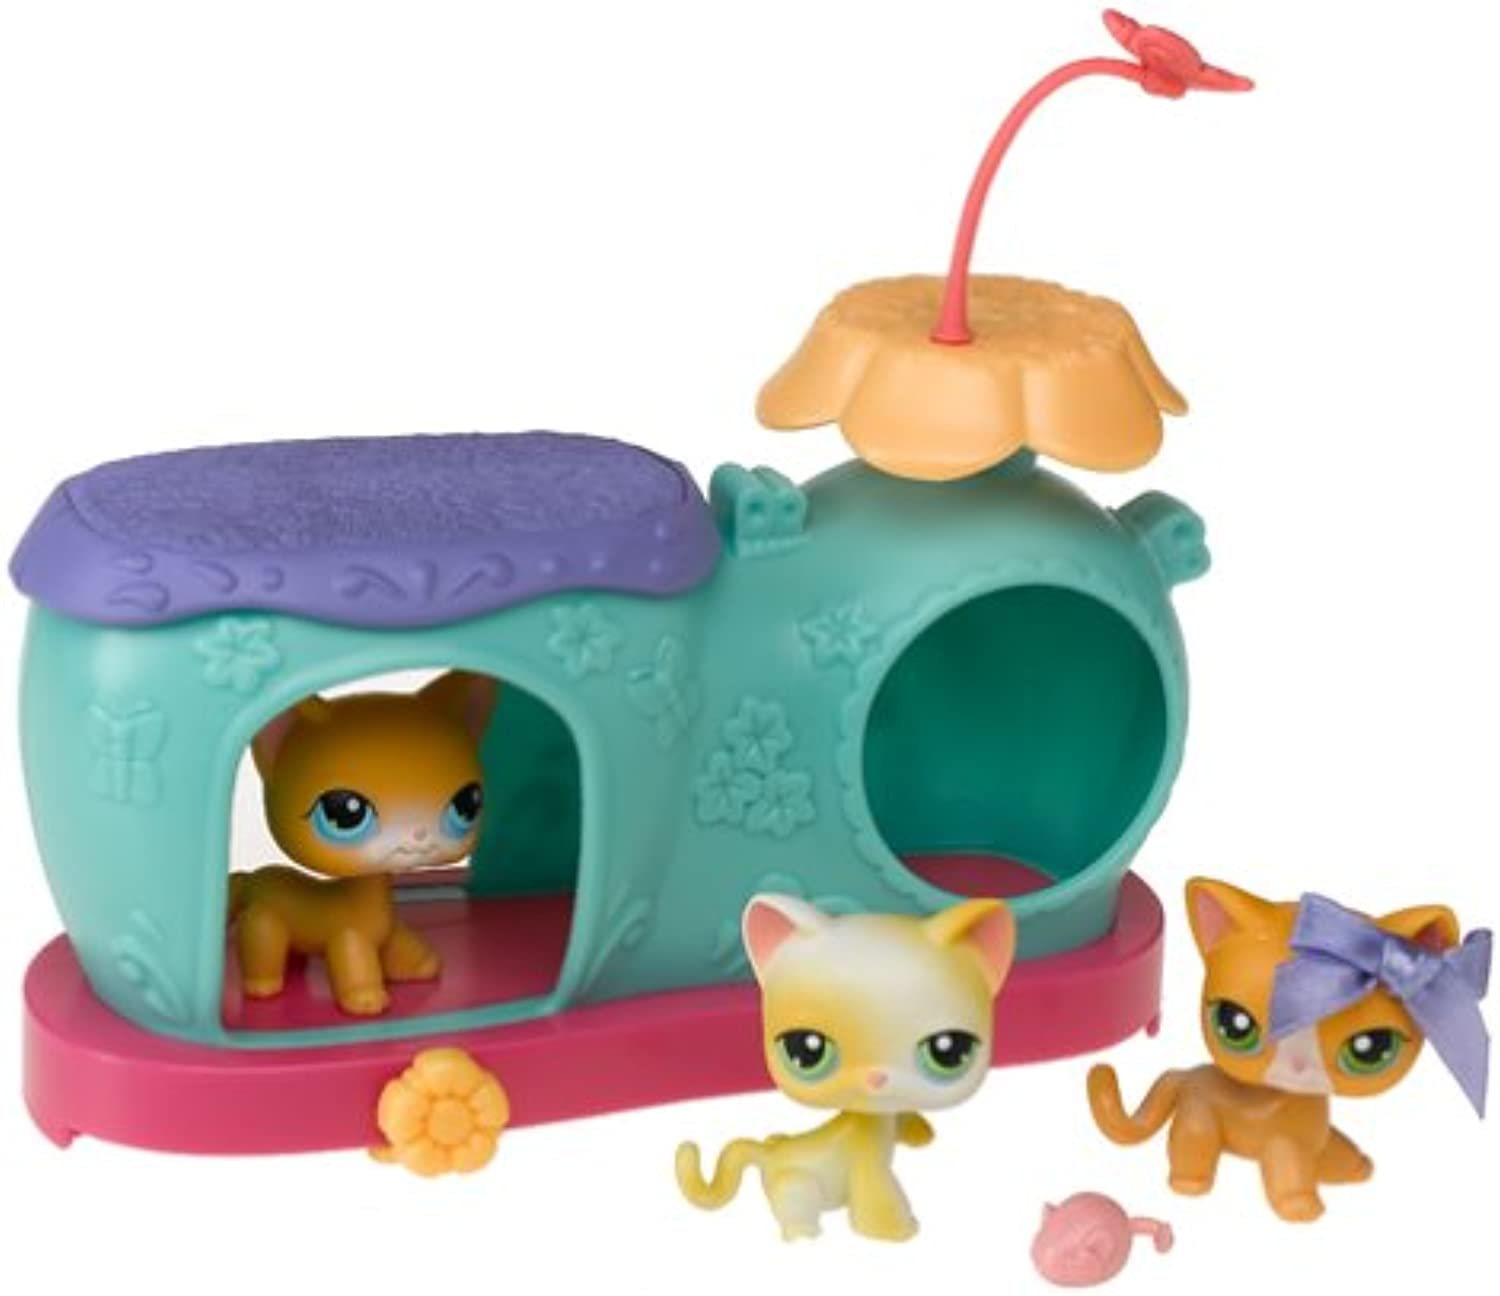 Littlest Pet Shop Multiples by Hasbro (Style=50154 Curious Kittens)